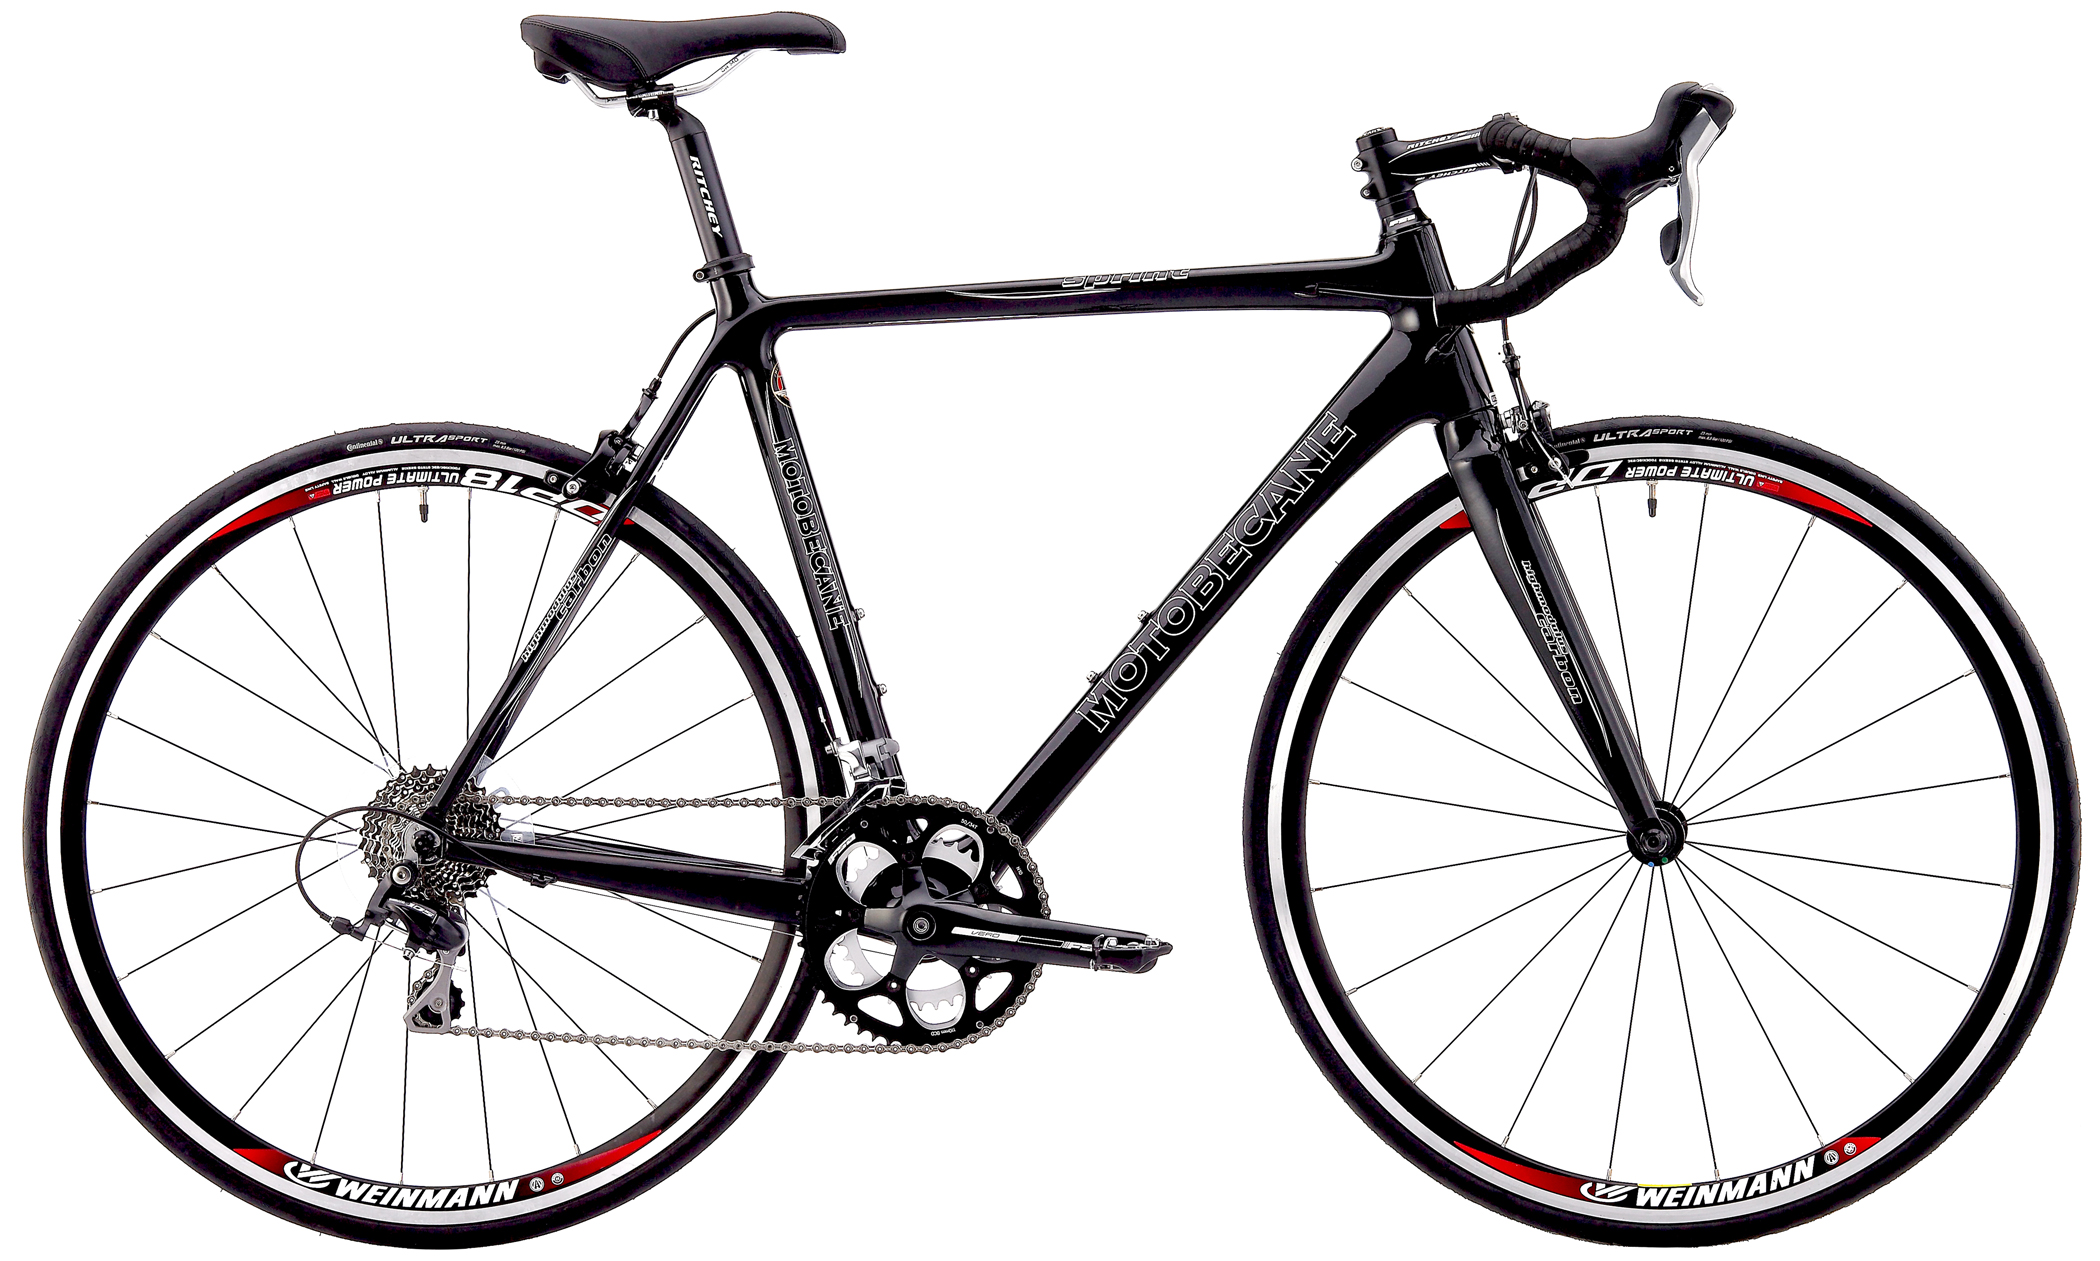 Save Up To 60% Off Shimano Carbon Road Bikes- Motobecane